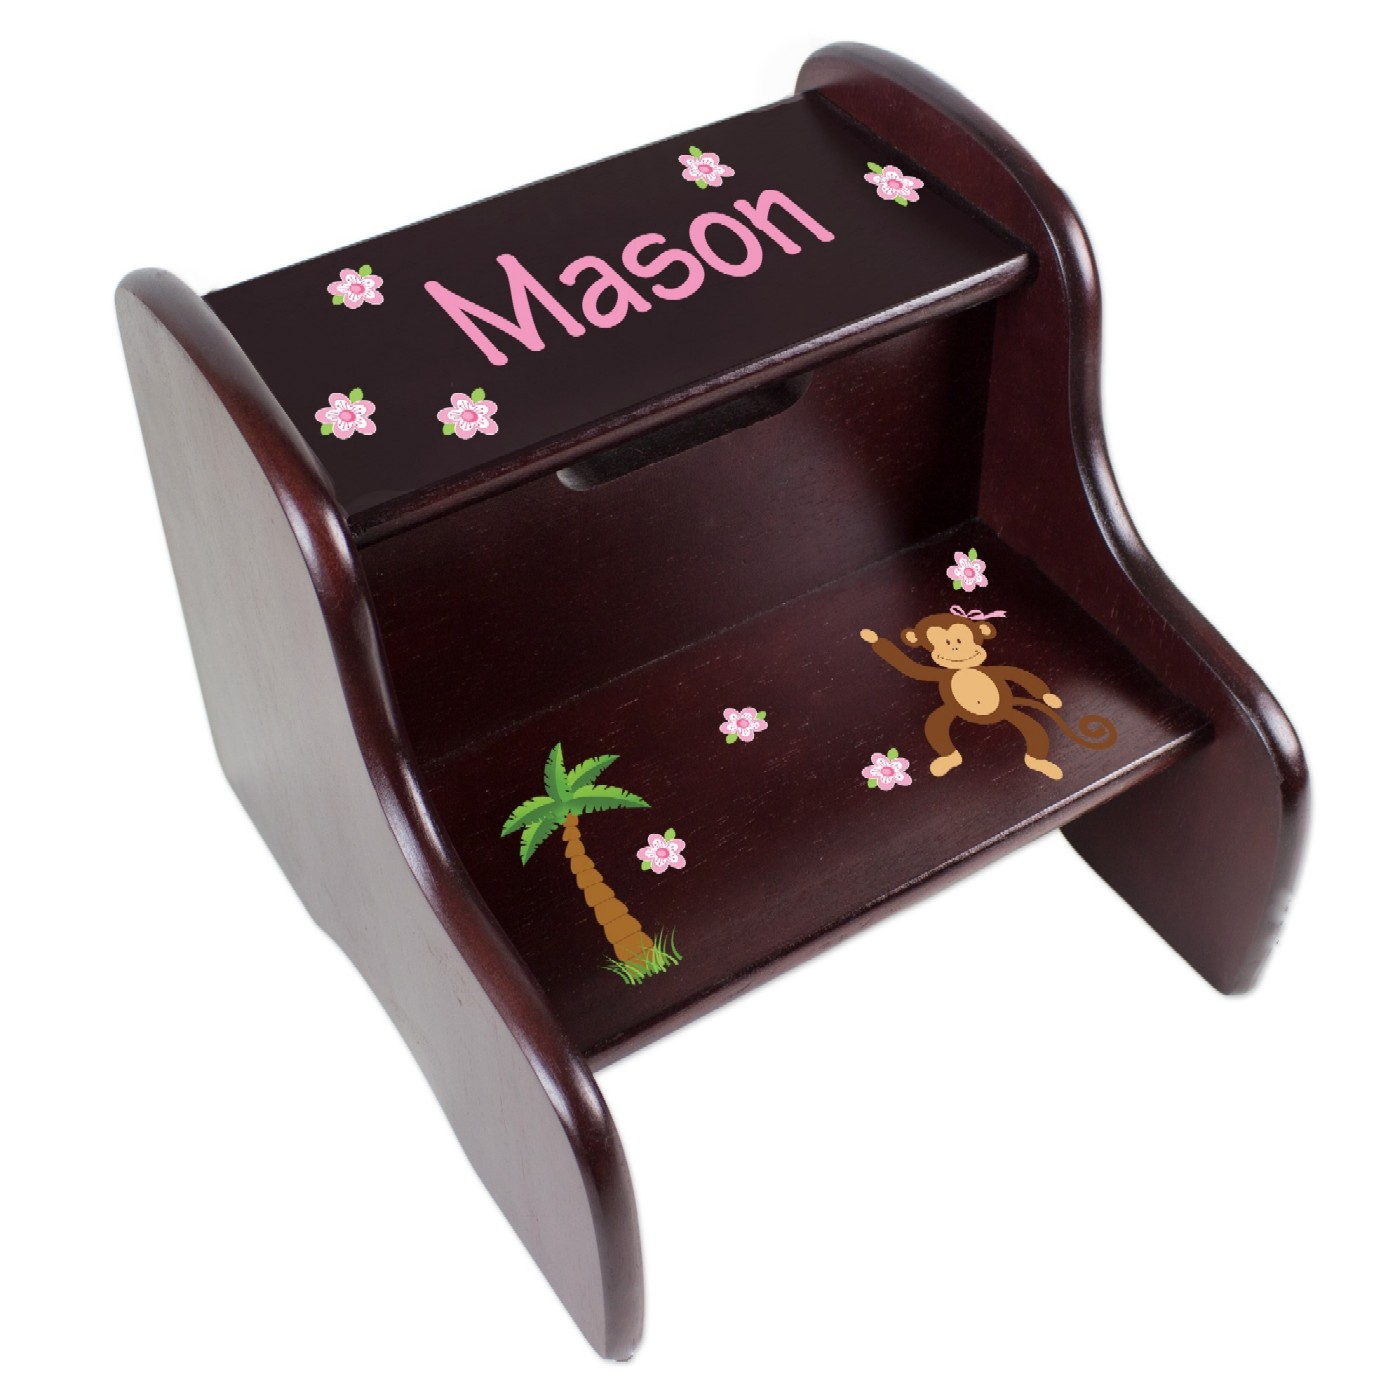 Magnificent Personalized Imprinted Wooden Step Stools For Kids Customarchery Wood Chair Design Ideas Customarcherynet